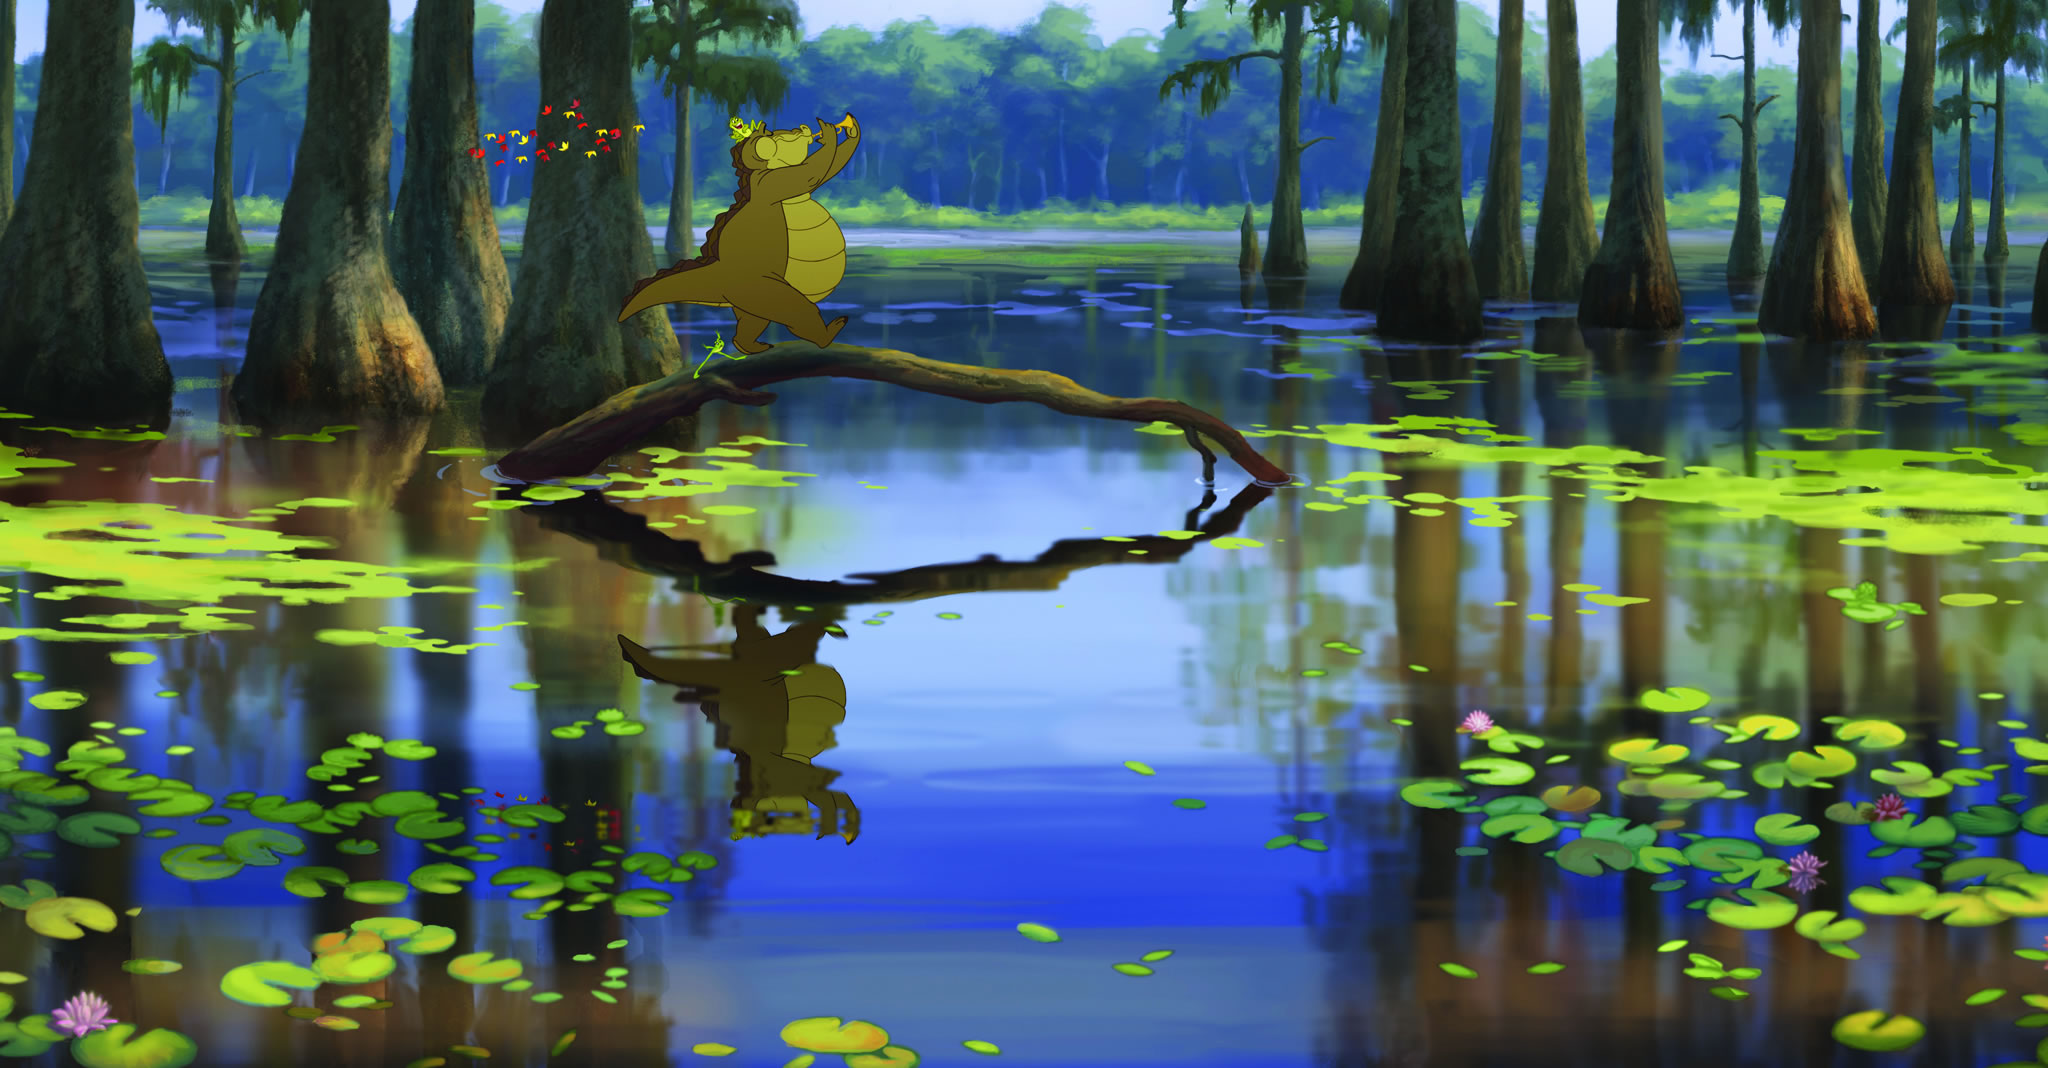 Louis the Gator in the Bayou from Princess and the Frog Desktop 2048x1068